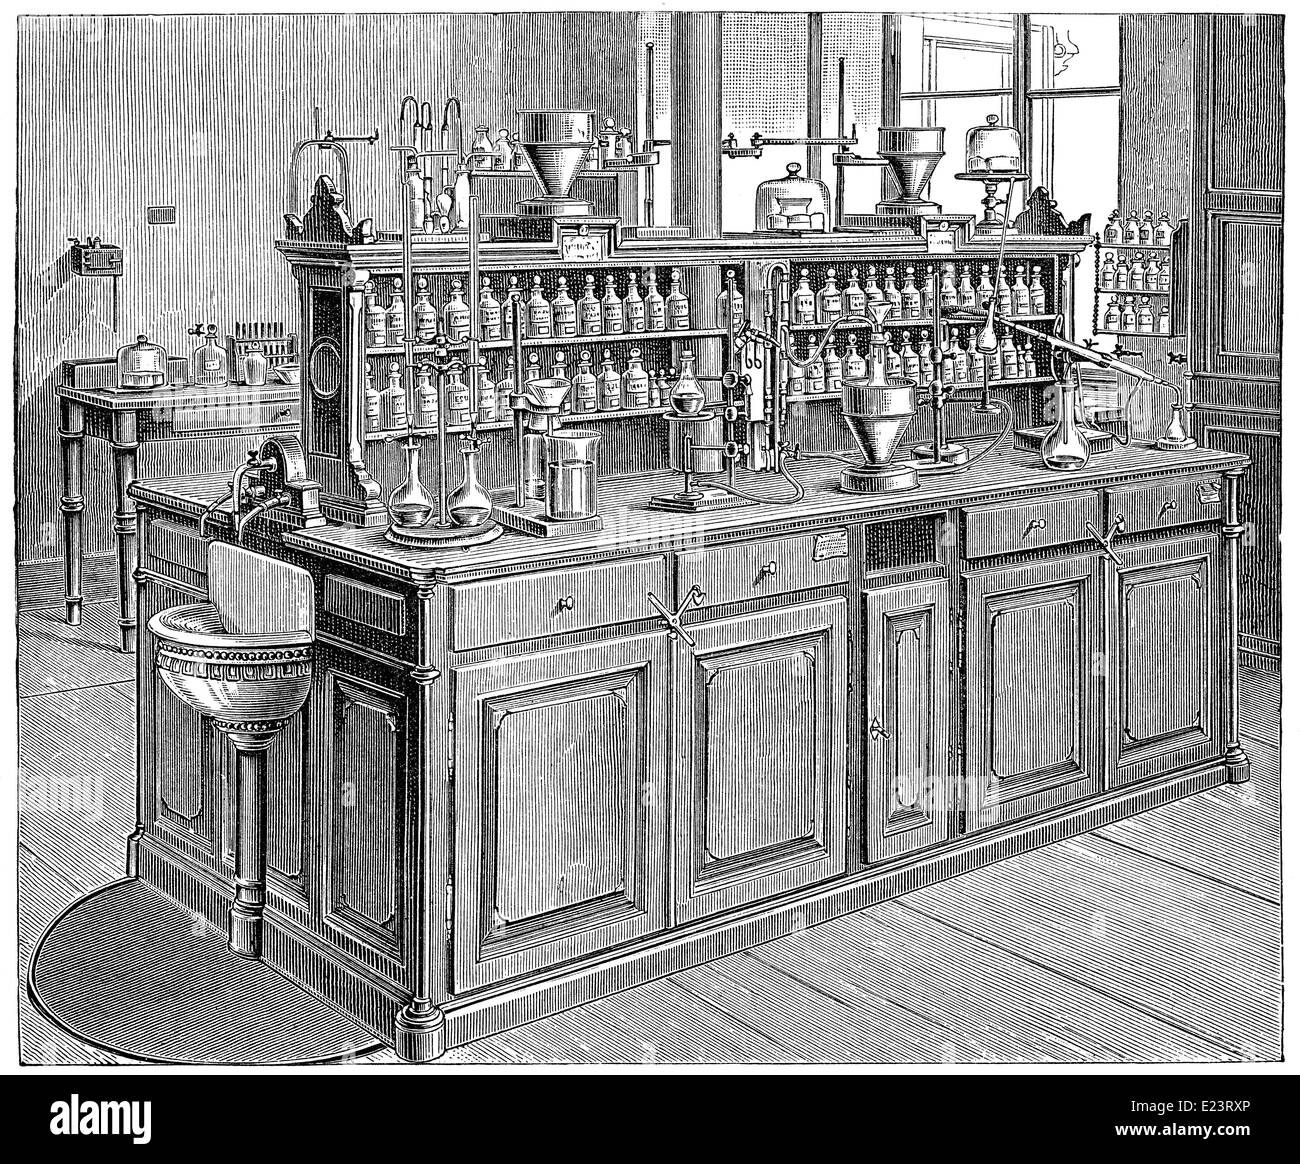 Laboratoire de Chimie, 1886, Université de Leipzig, Allemagne Photo Stock